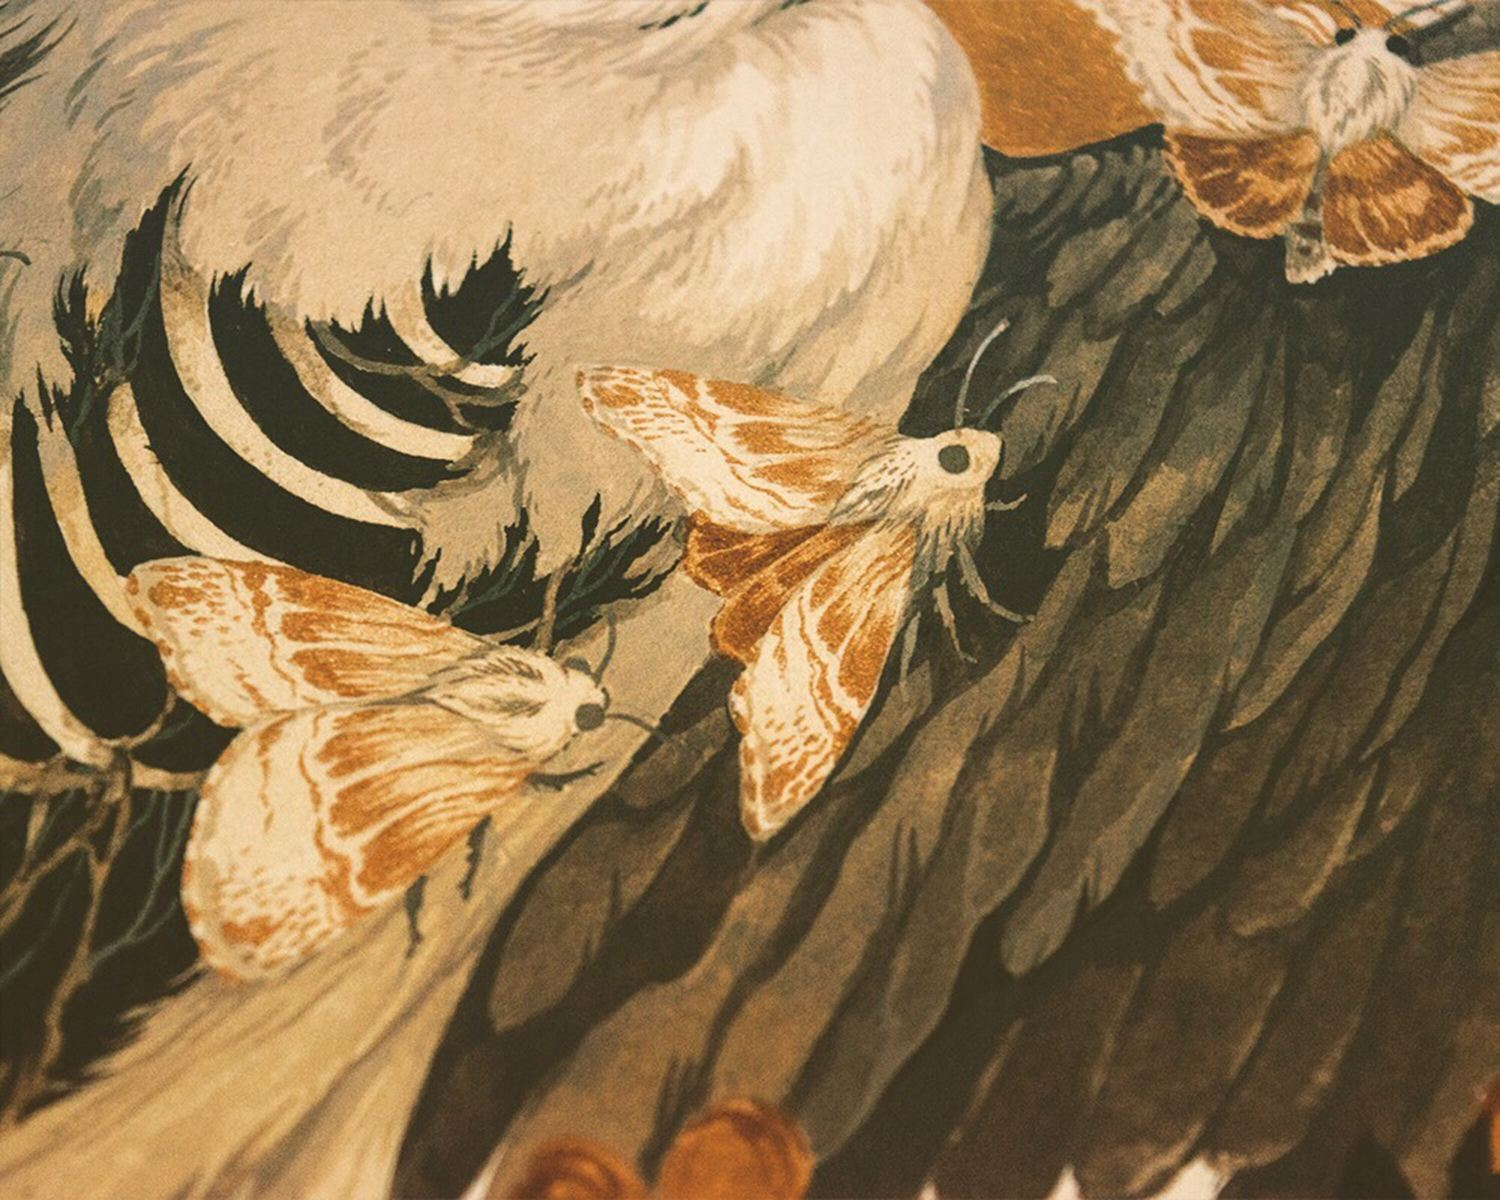 close up of bird illustration, moths